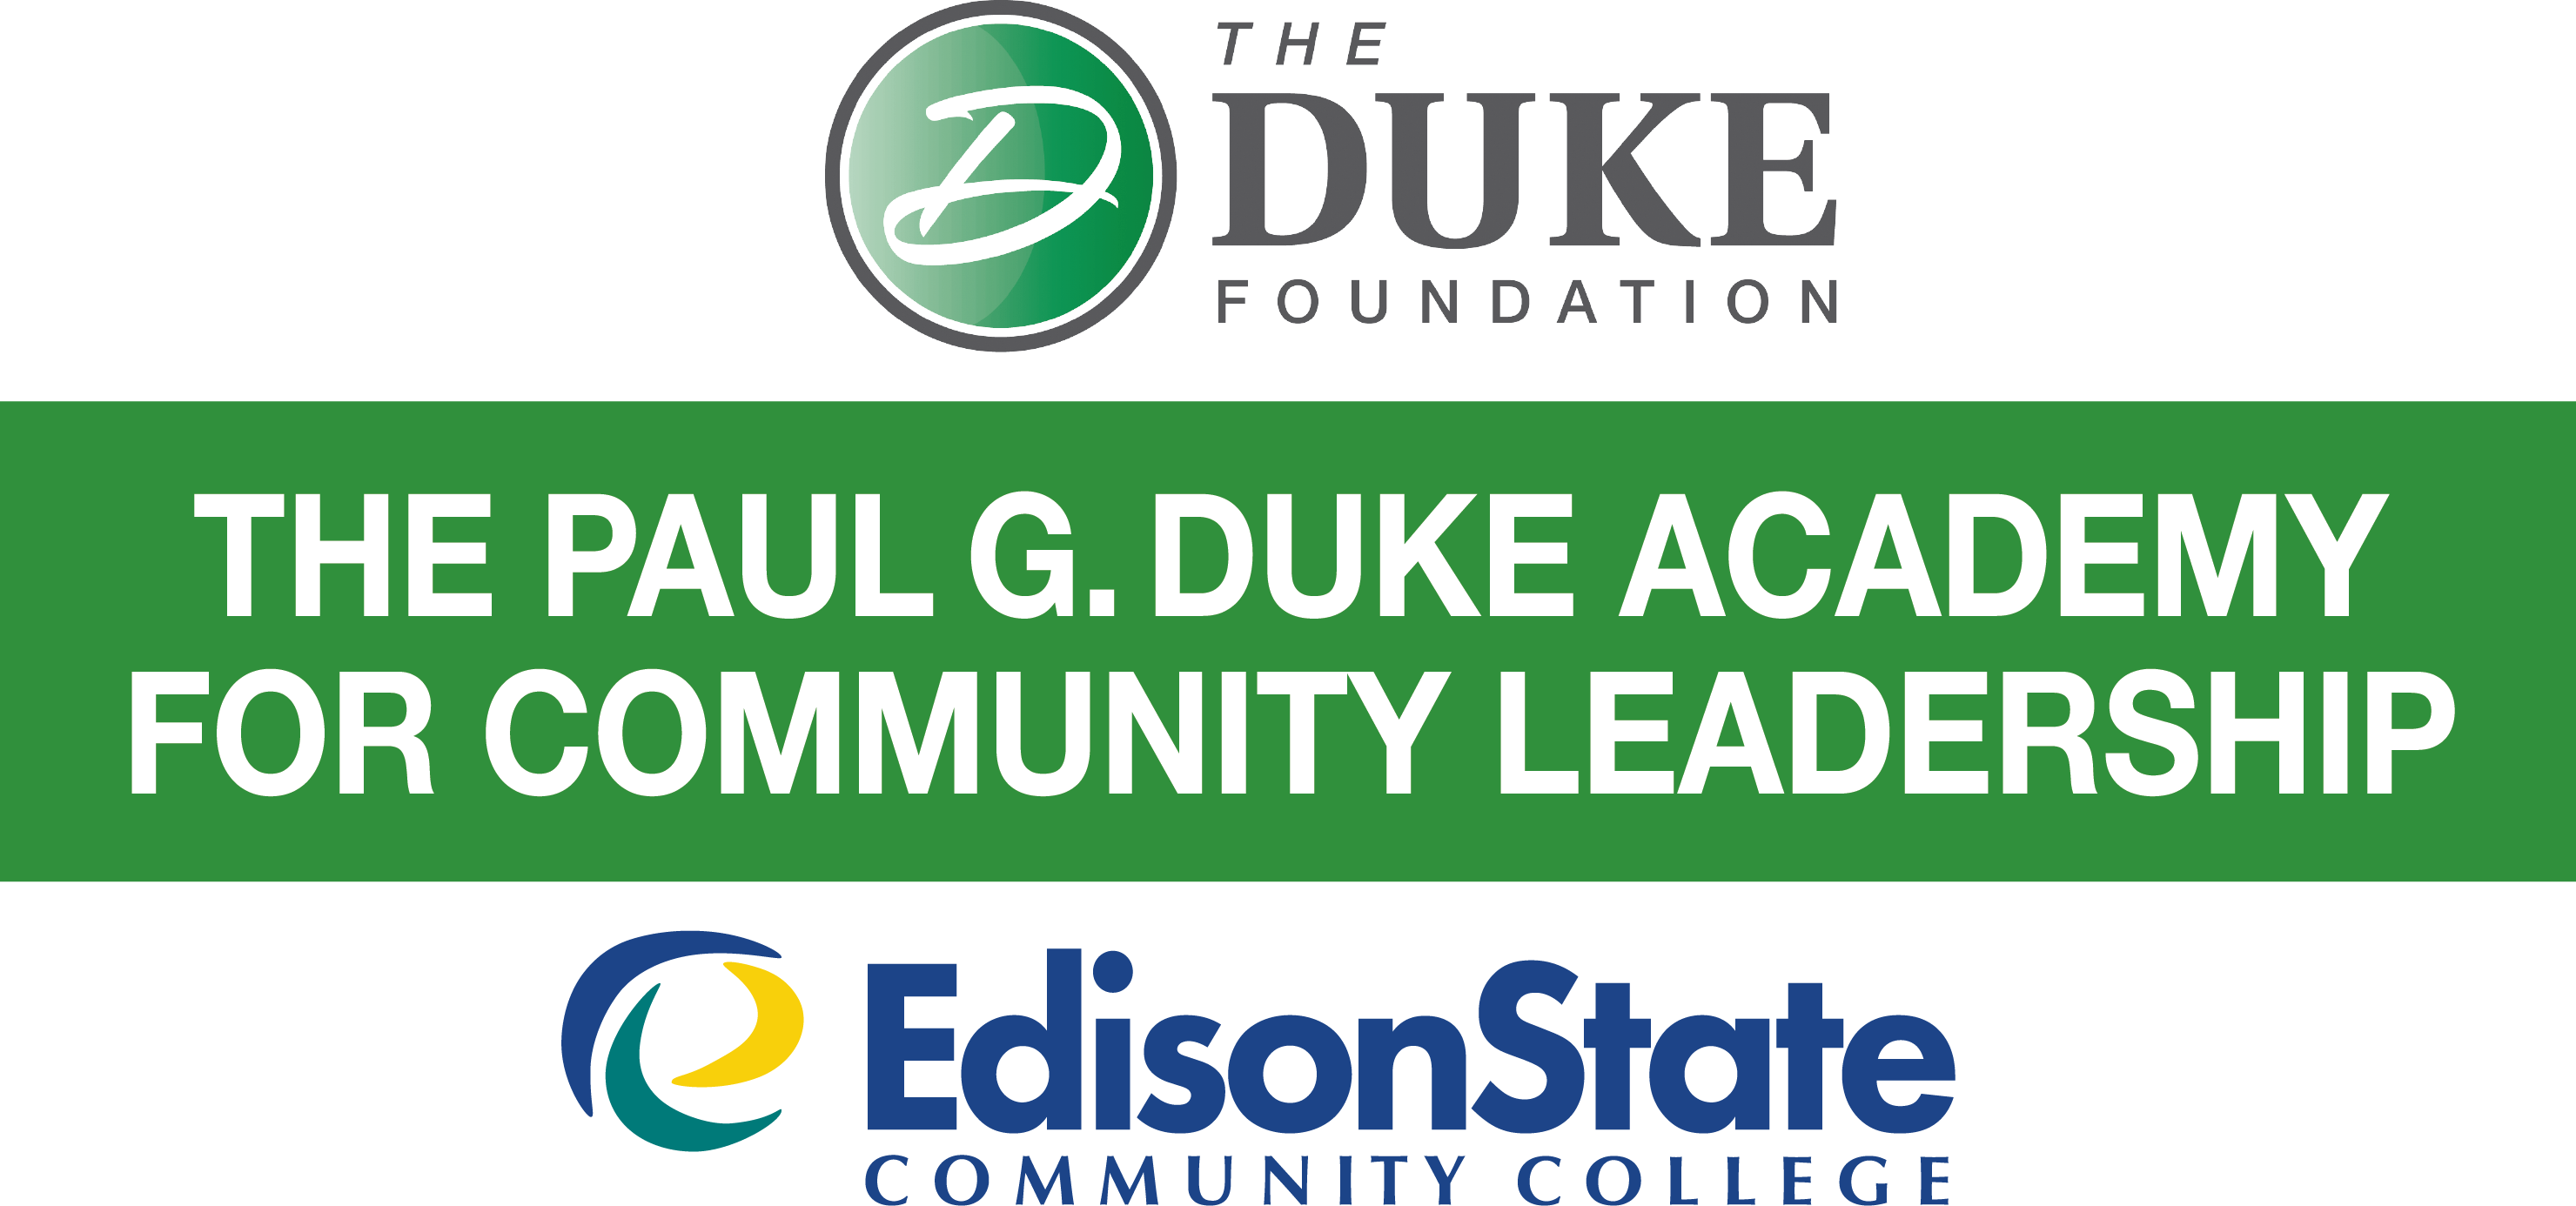 Paul G. Duke Academy for Community Leadership